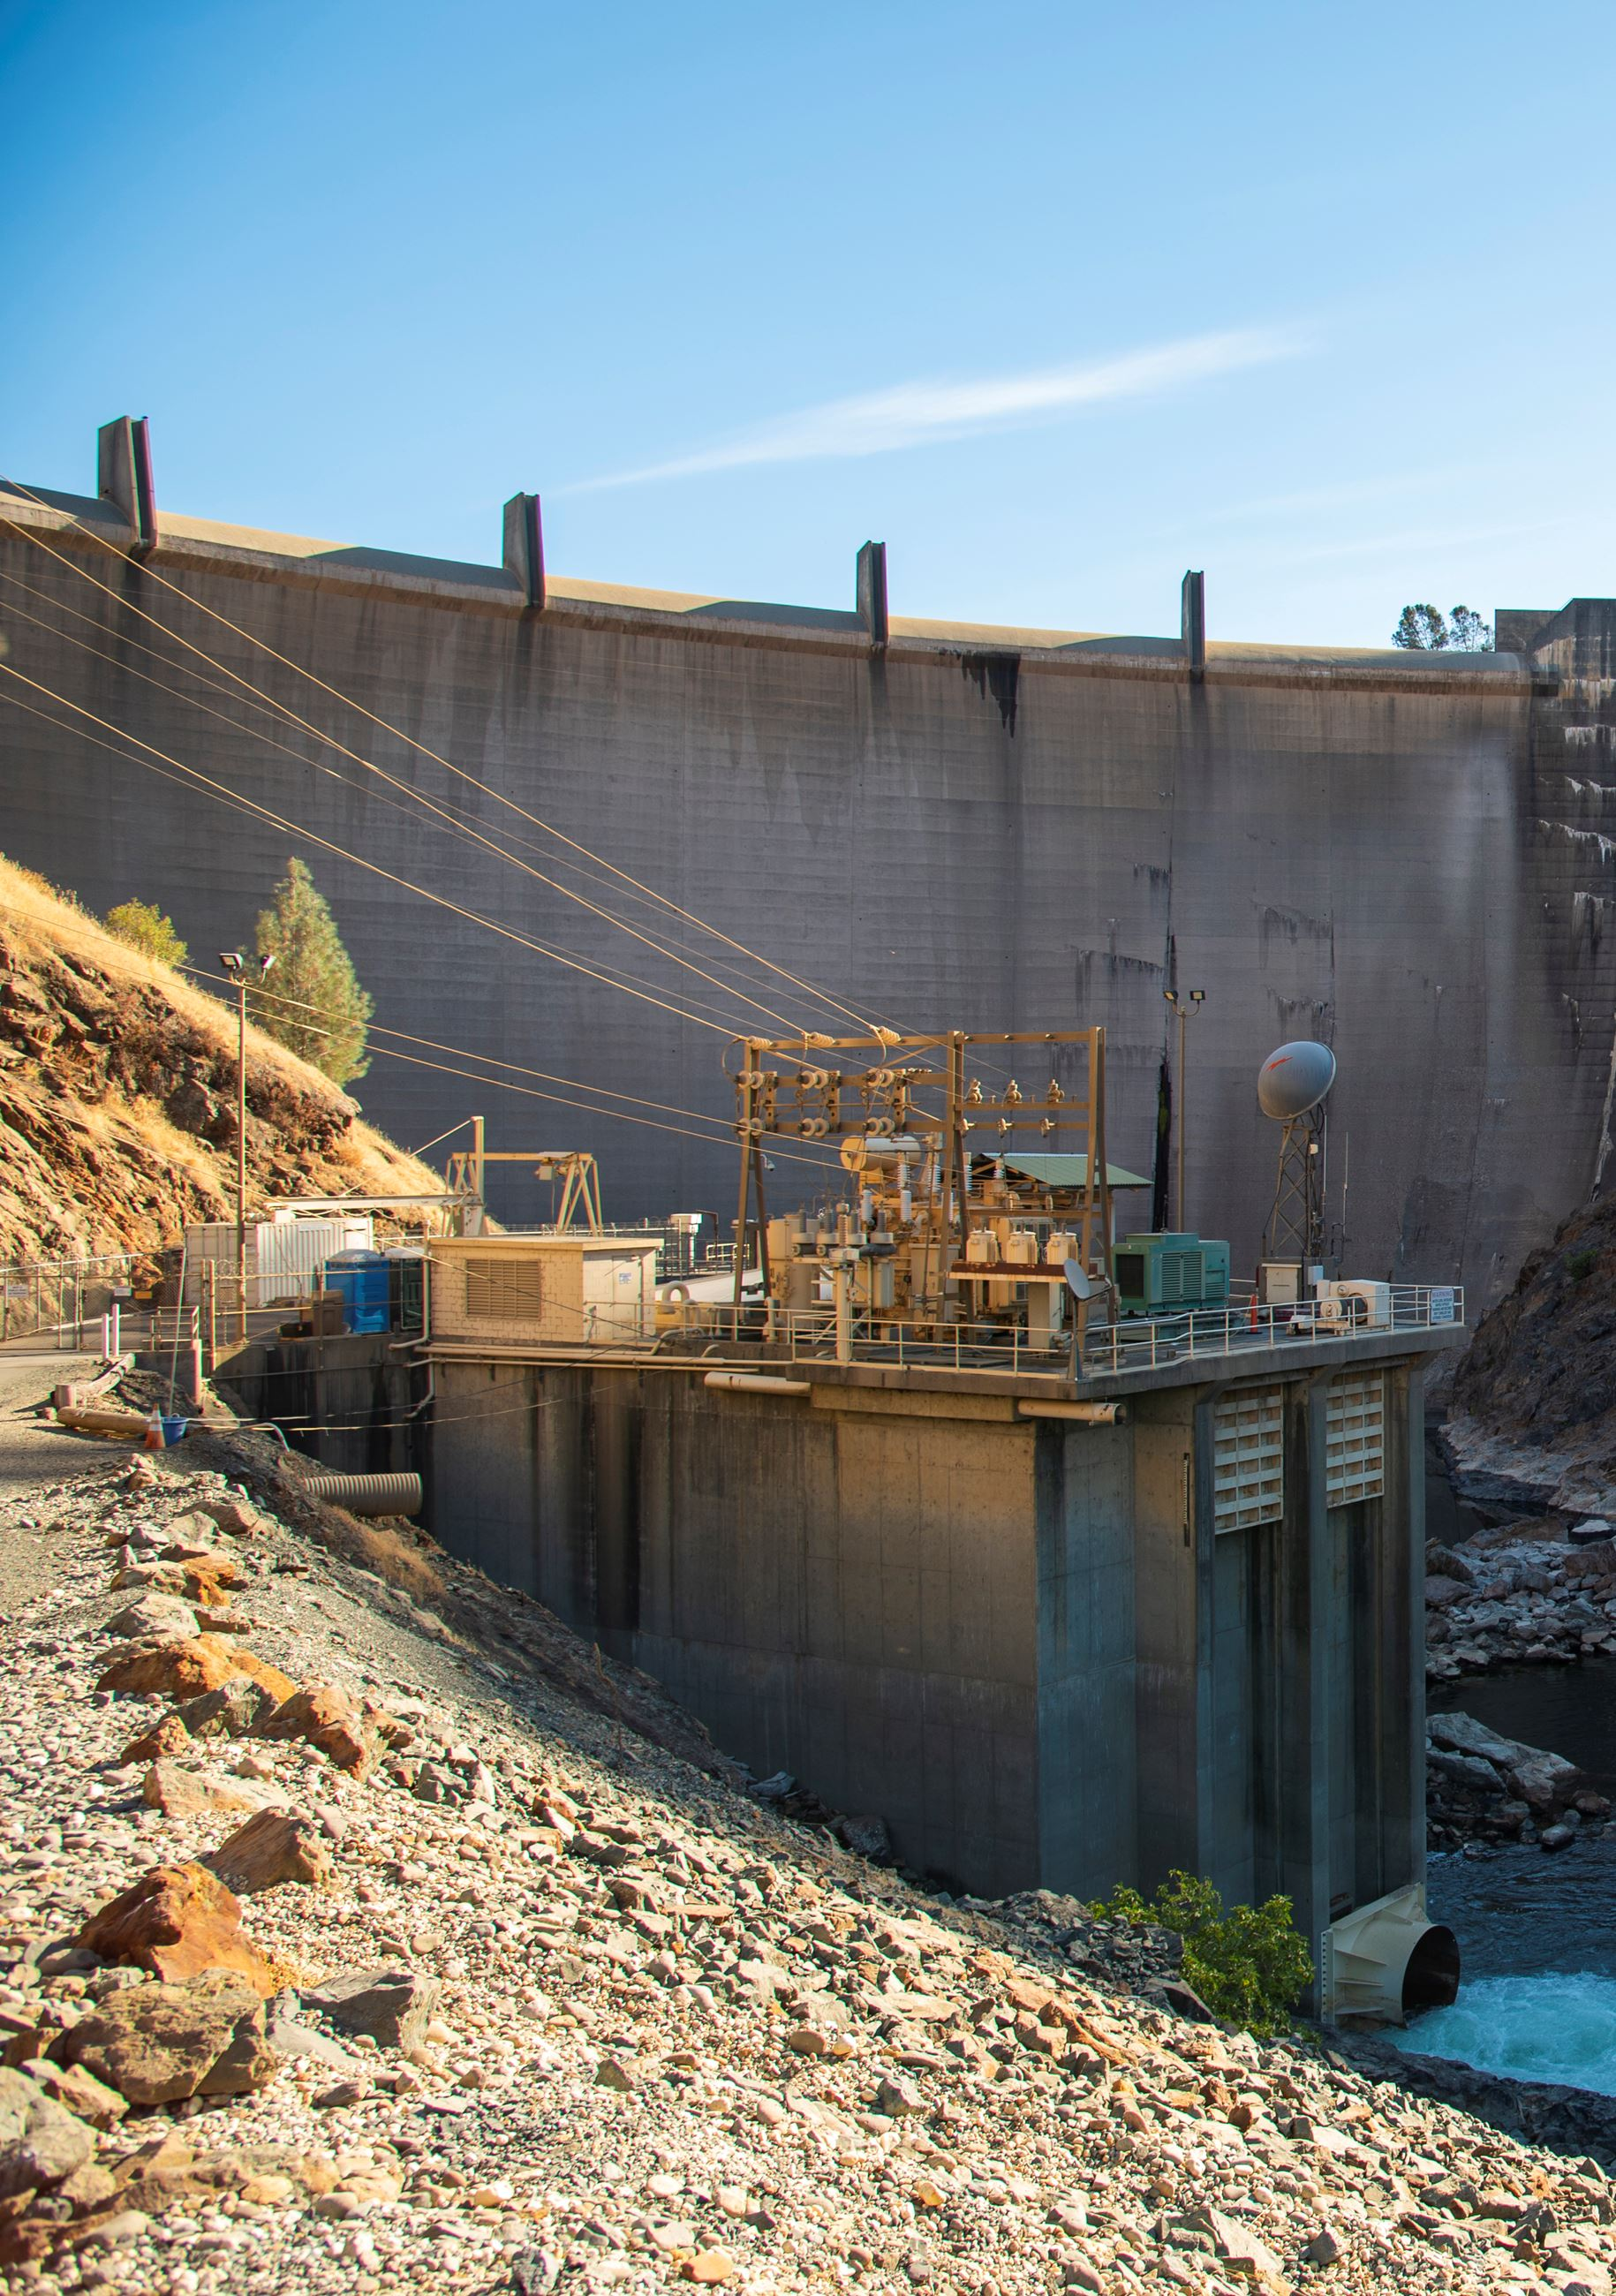 A photo of Yuba Water's Narrows 2 Powerhouse with Englebright Dam in the background.